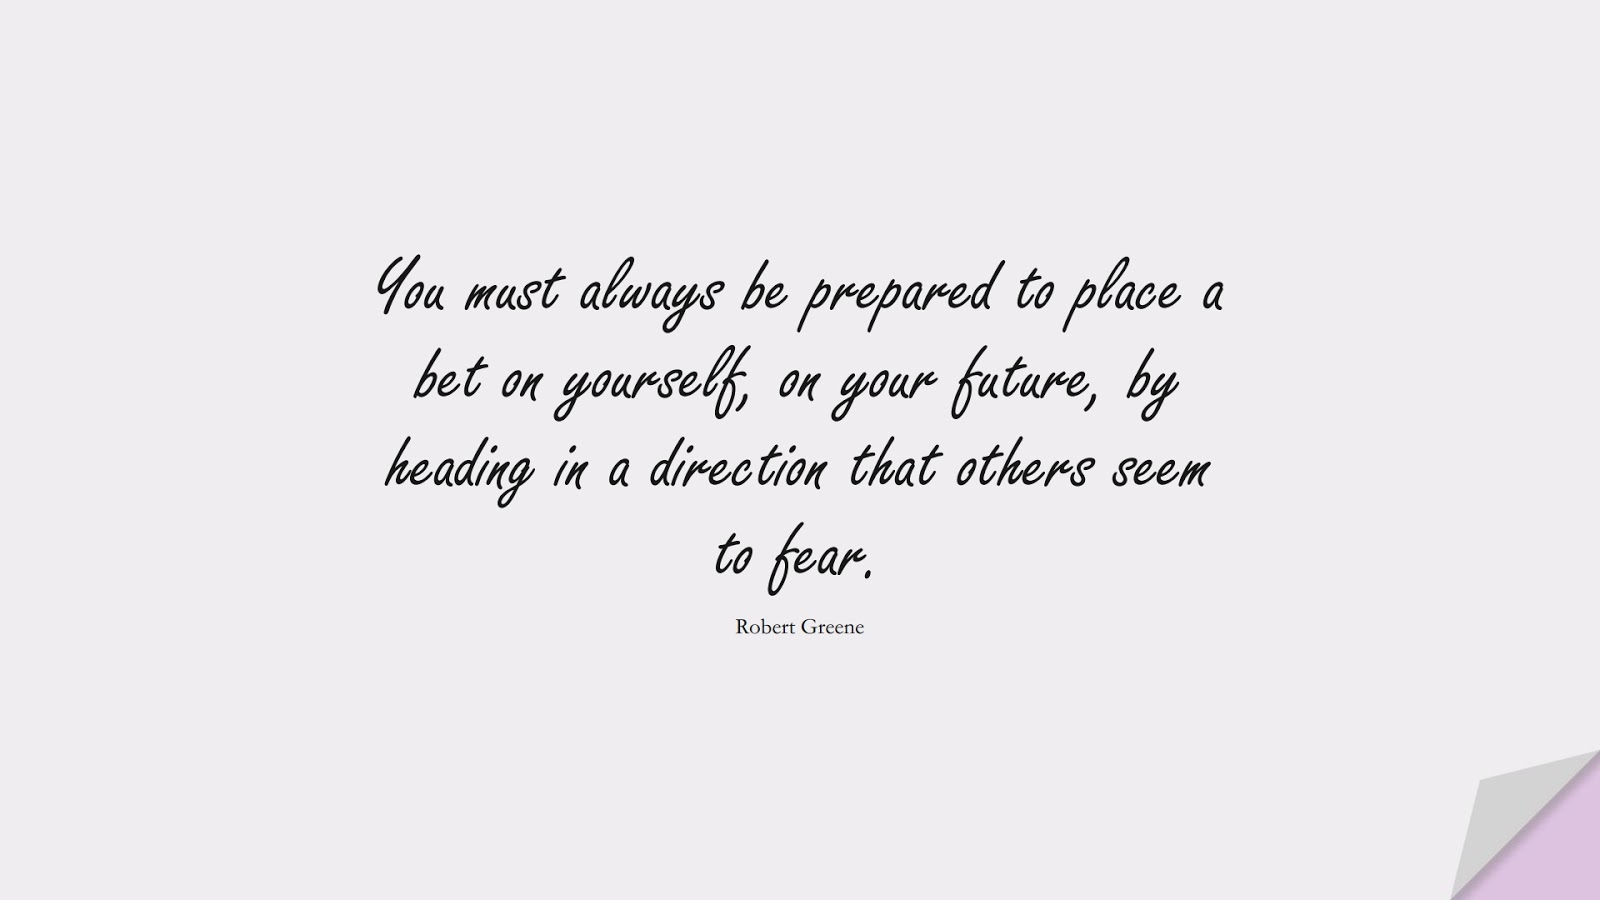 You must always be prepared to place a bet on yourself, on your future, by heading in a direction that others seem to fear. (Robert Greene);  #FearQuotes